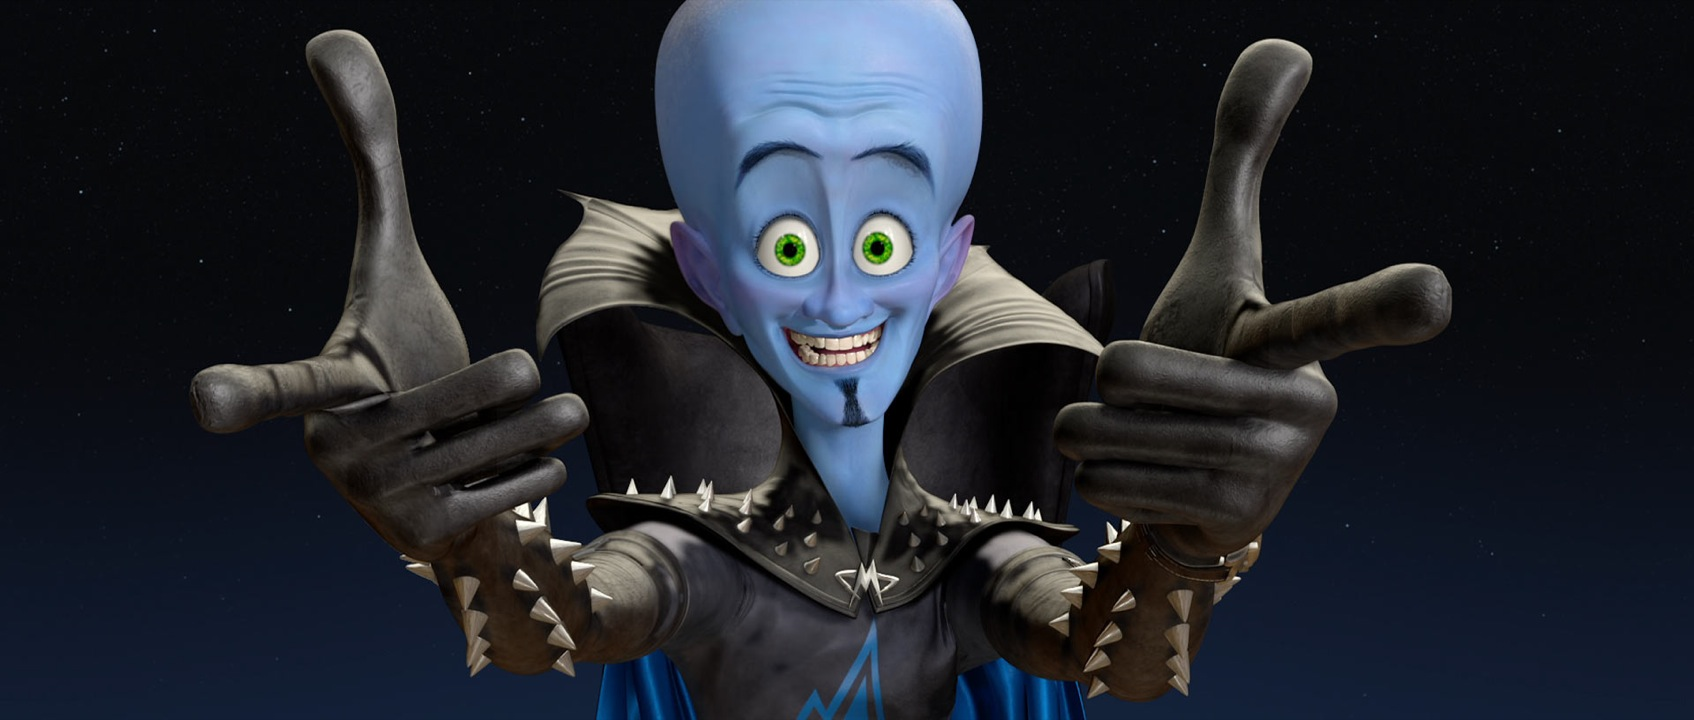 megamind gallery6_h_720